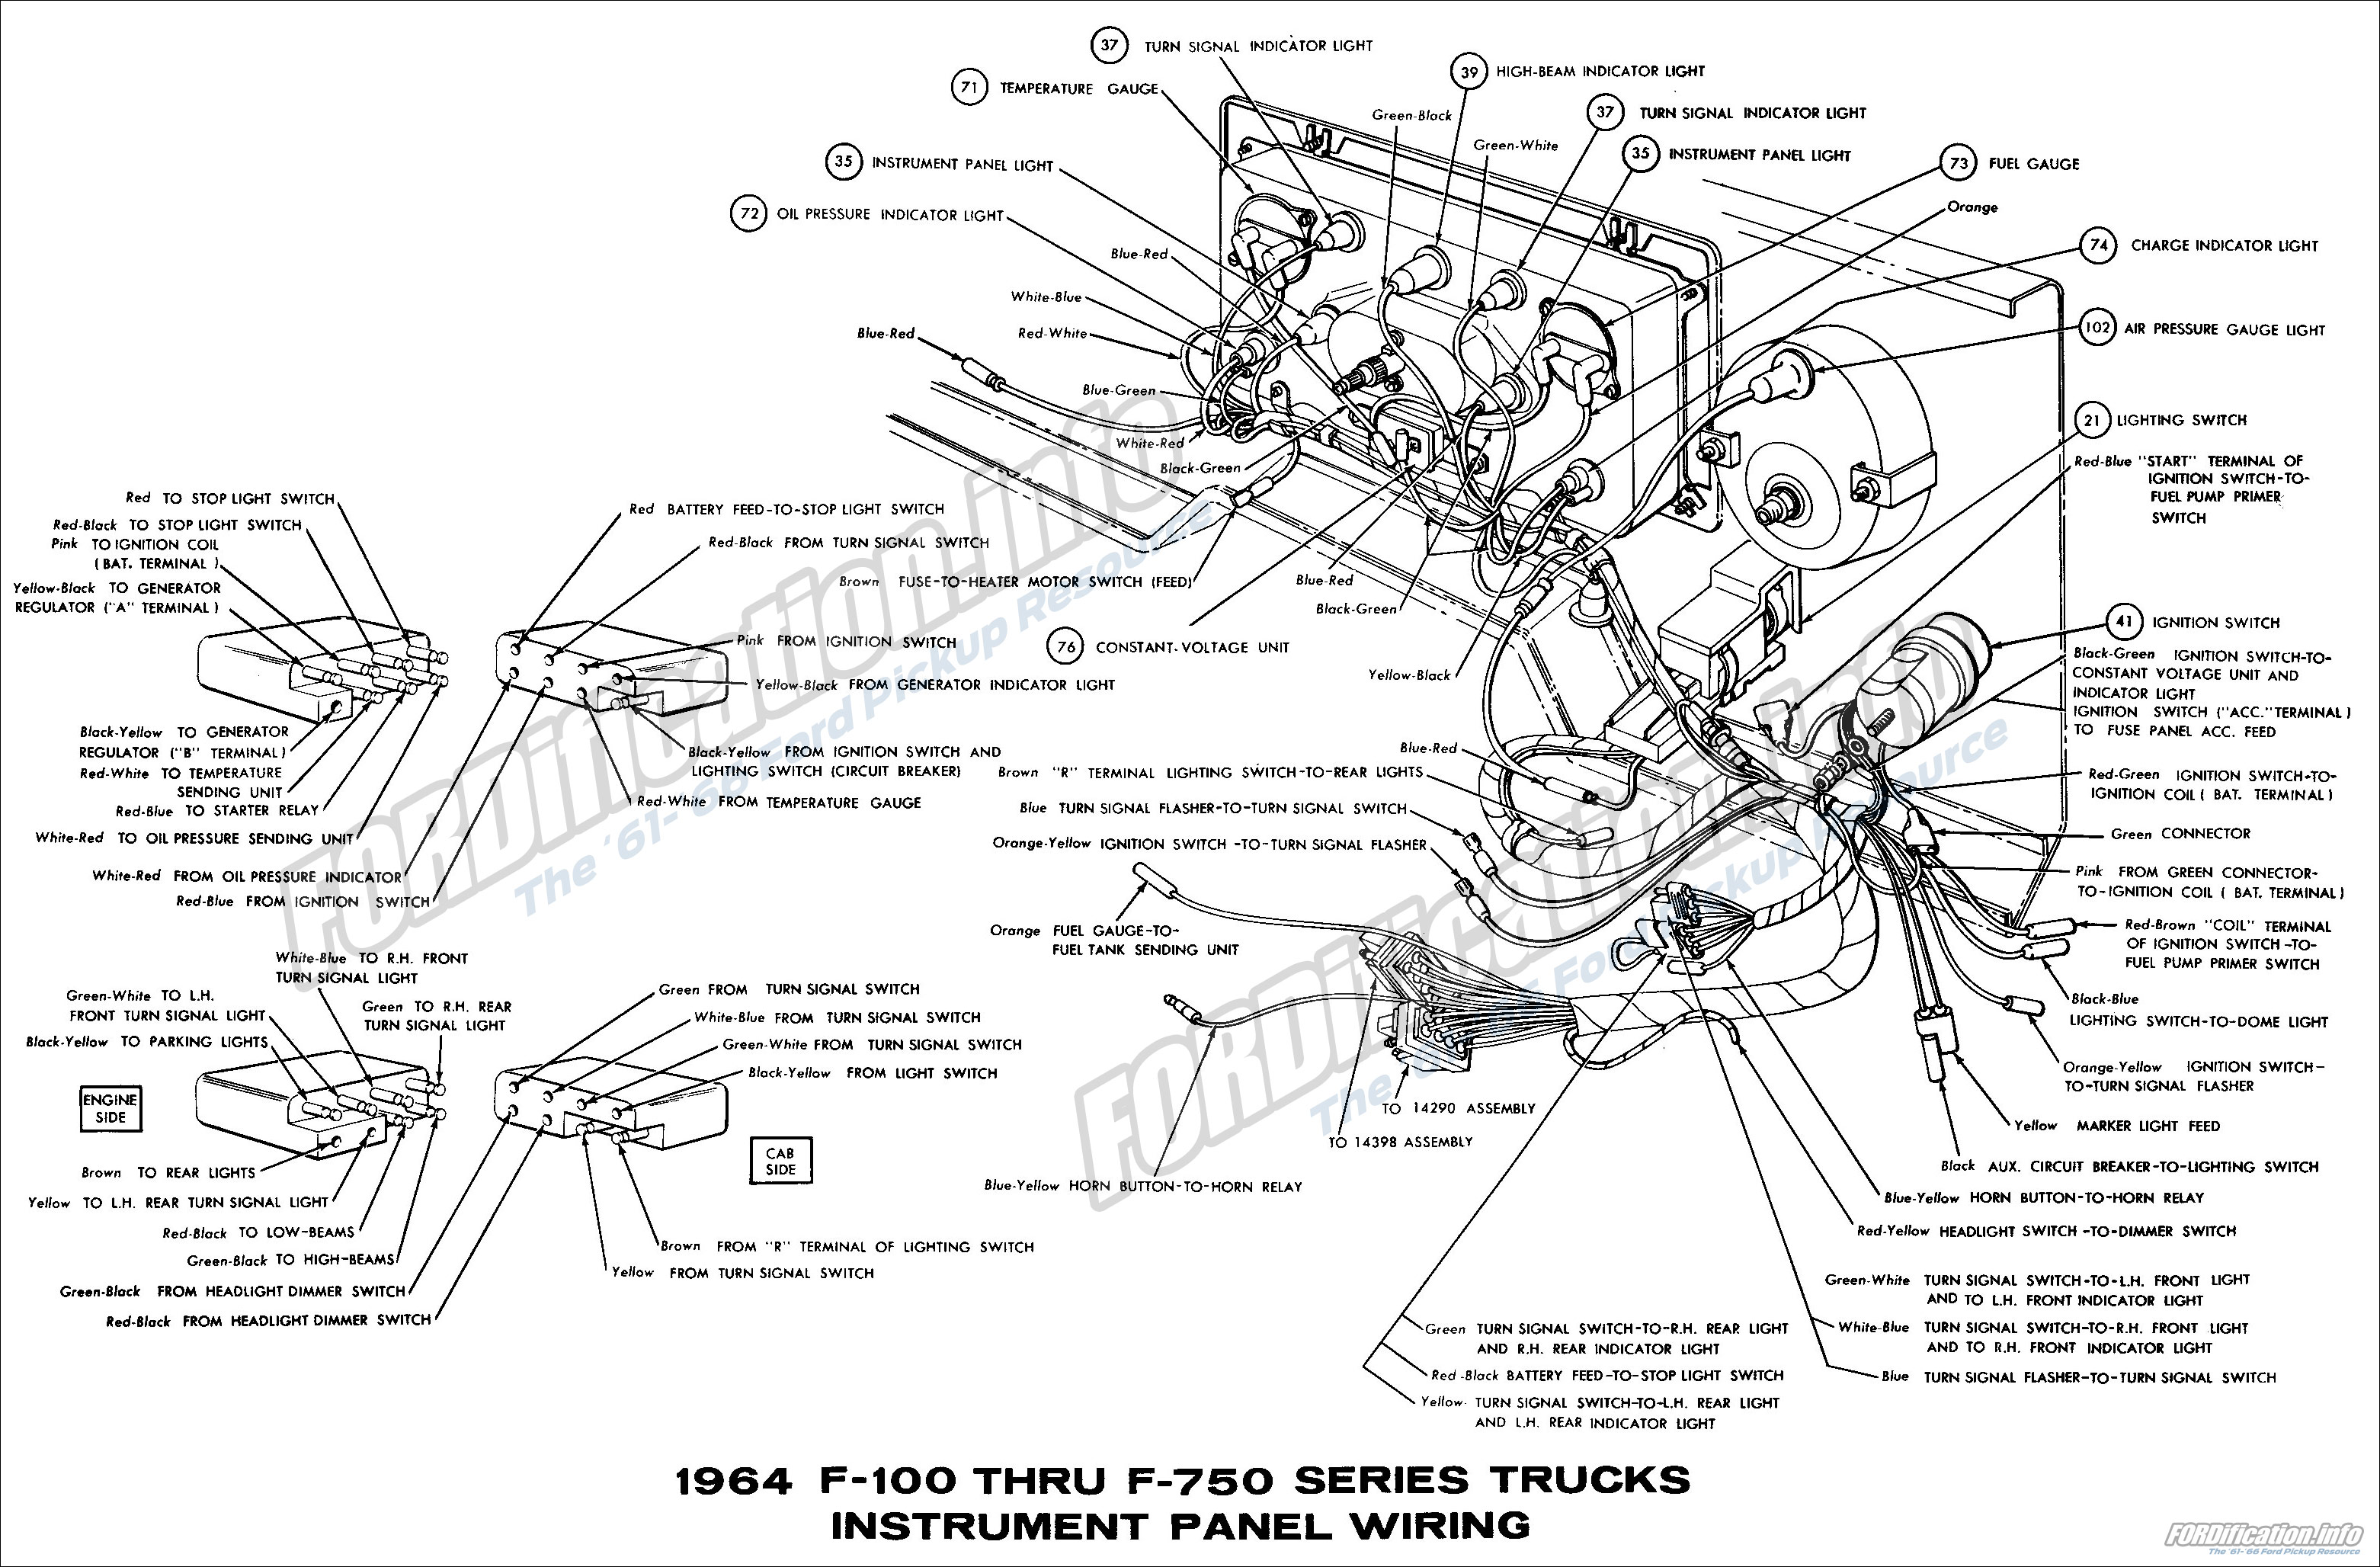 1964_02 1964 ford truck wiring diagrams fordification info the '61 '66 Universal Wiper Motor Wiring Diagram at fashall.co